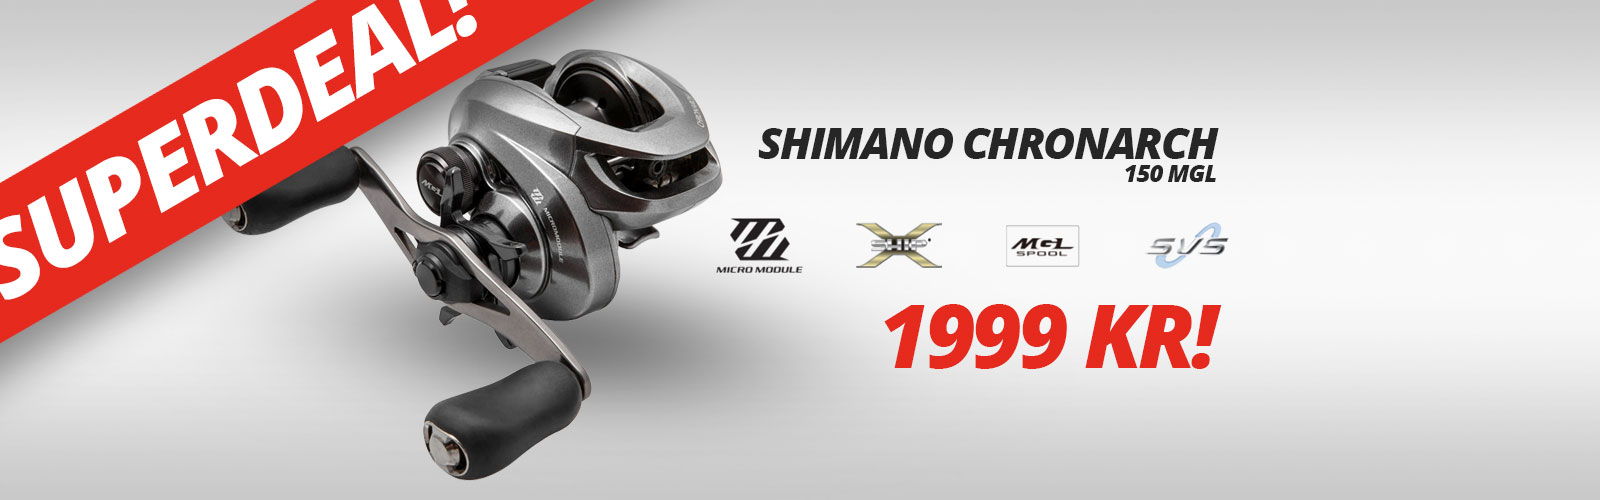 Shimano Chronarch rea